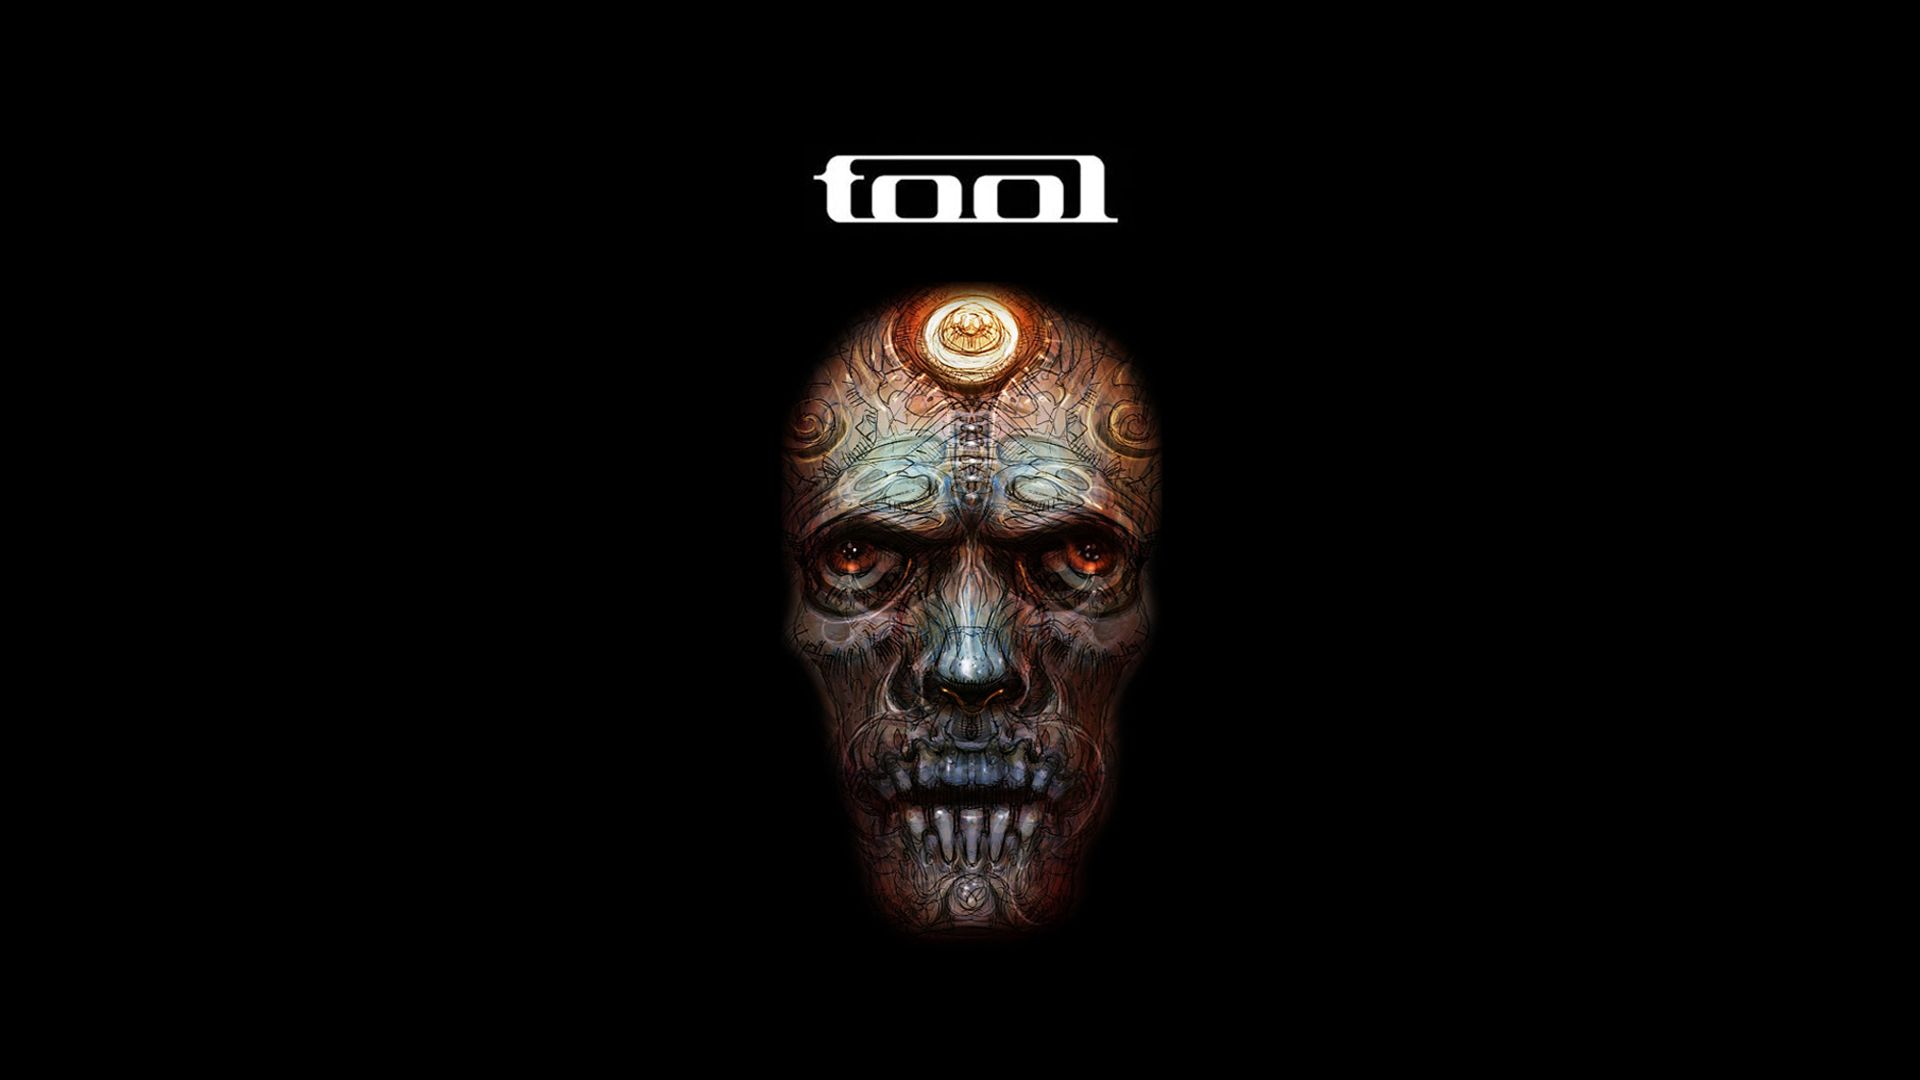 Tool's new album not coming out any time soon | Music | Band